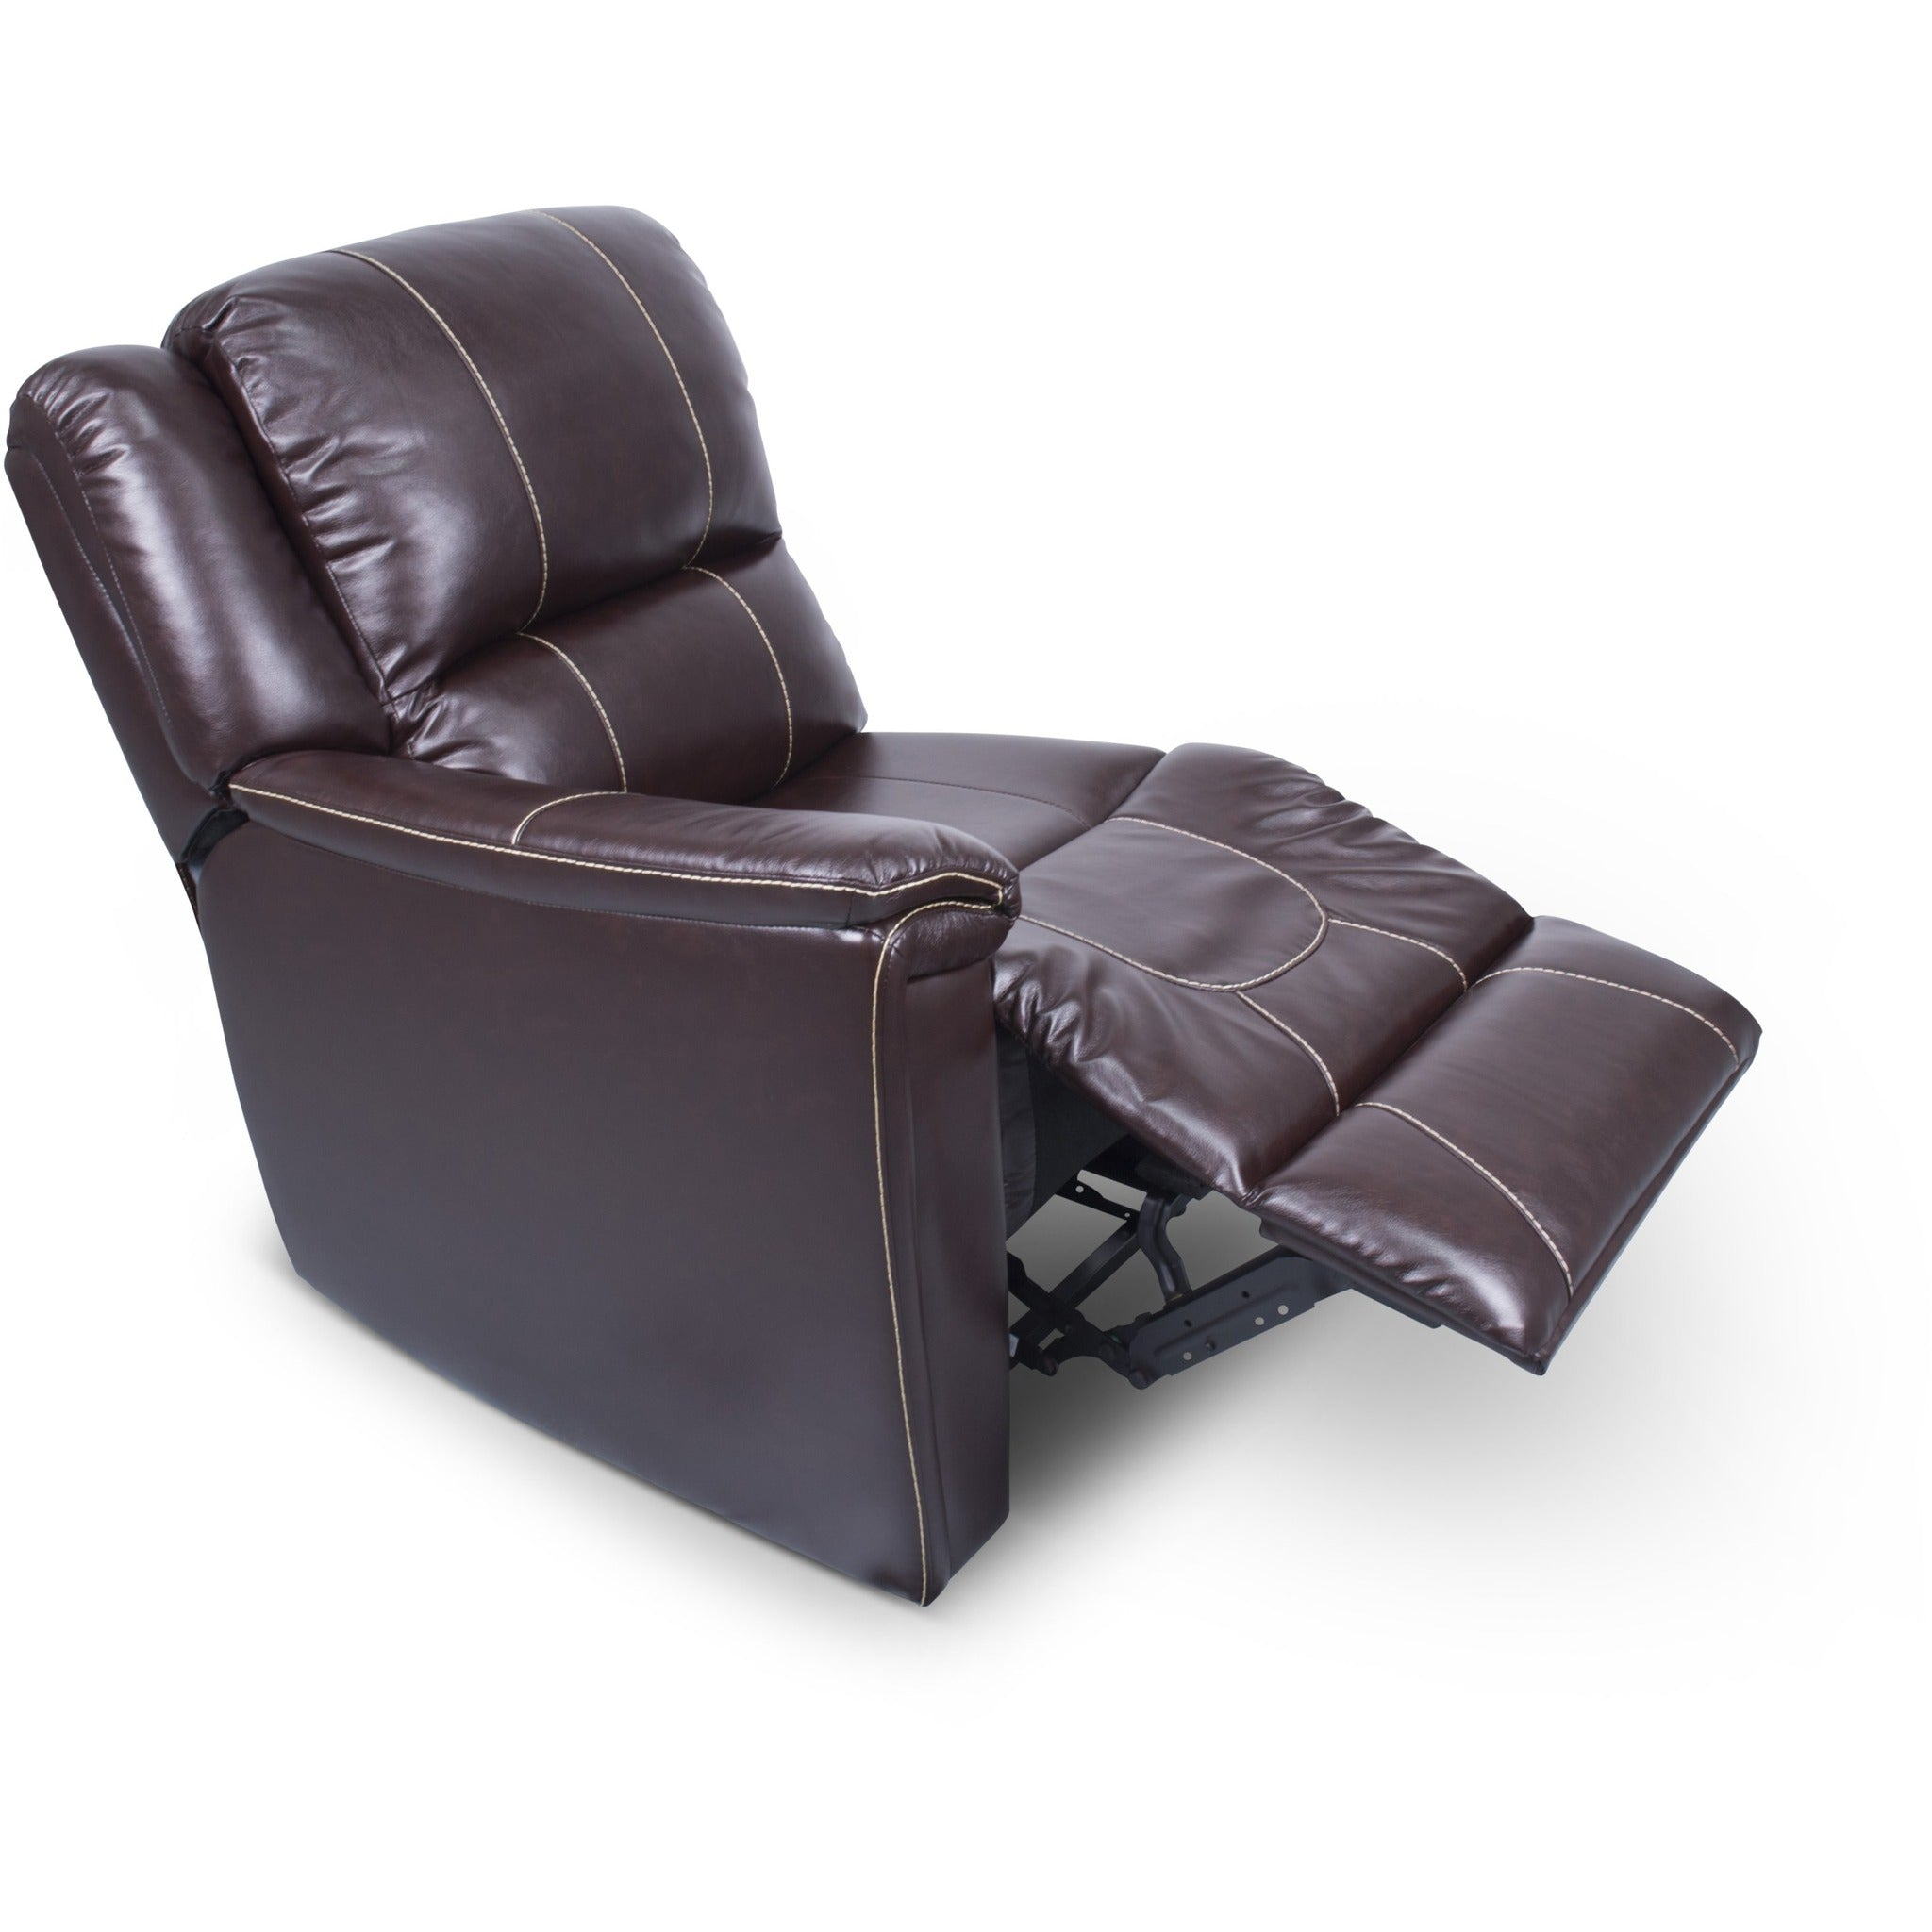 Lippert 386642 Right Hand Recliner in Jaleco Chocolate